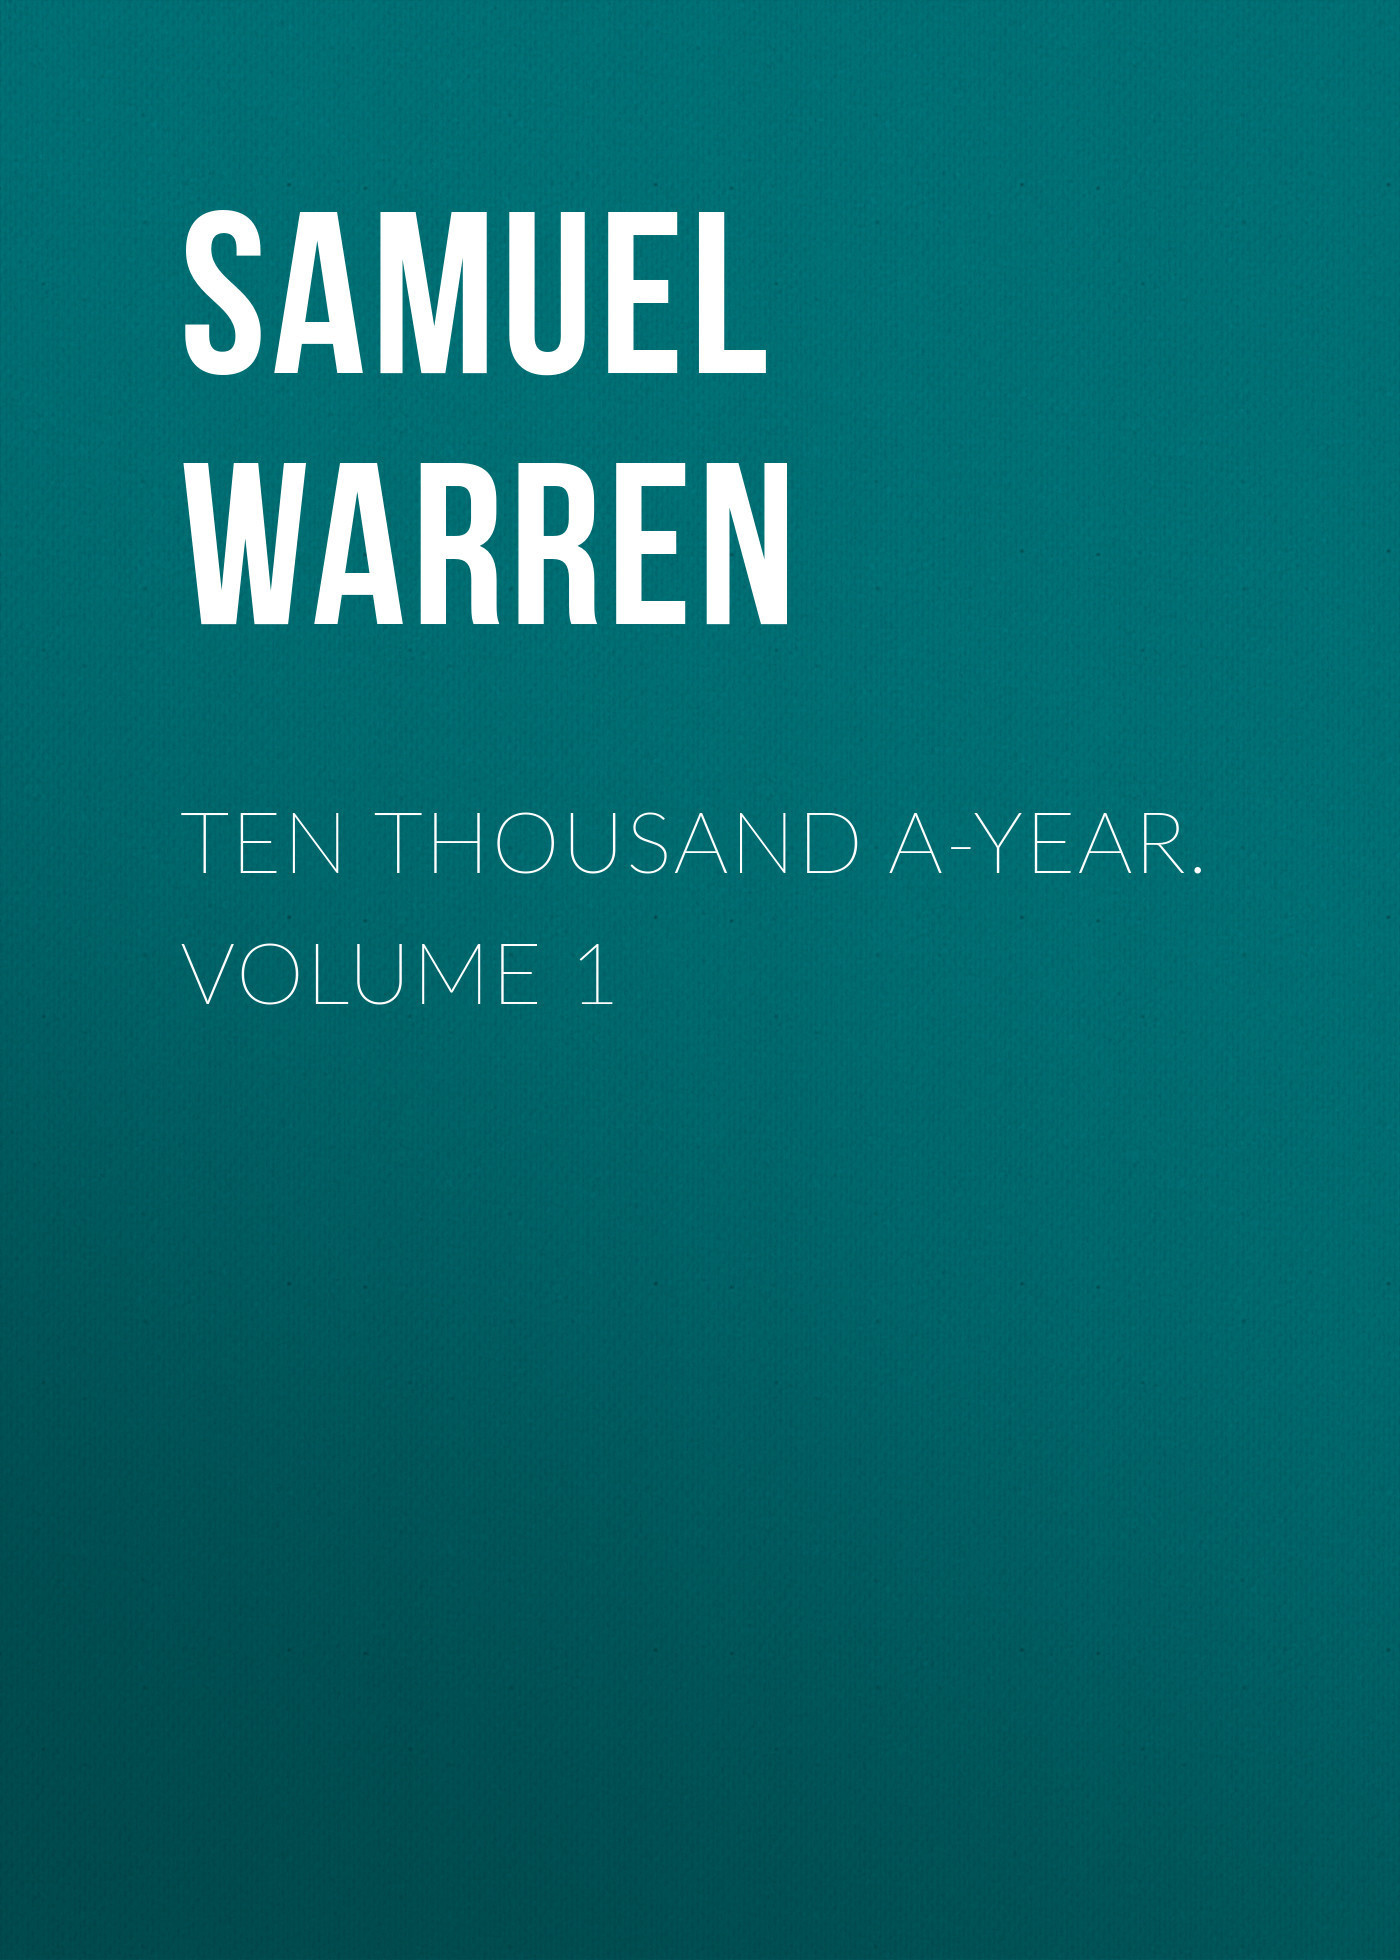 Samuel Warren Ten Thousand a-Year. Volume 1